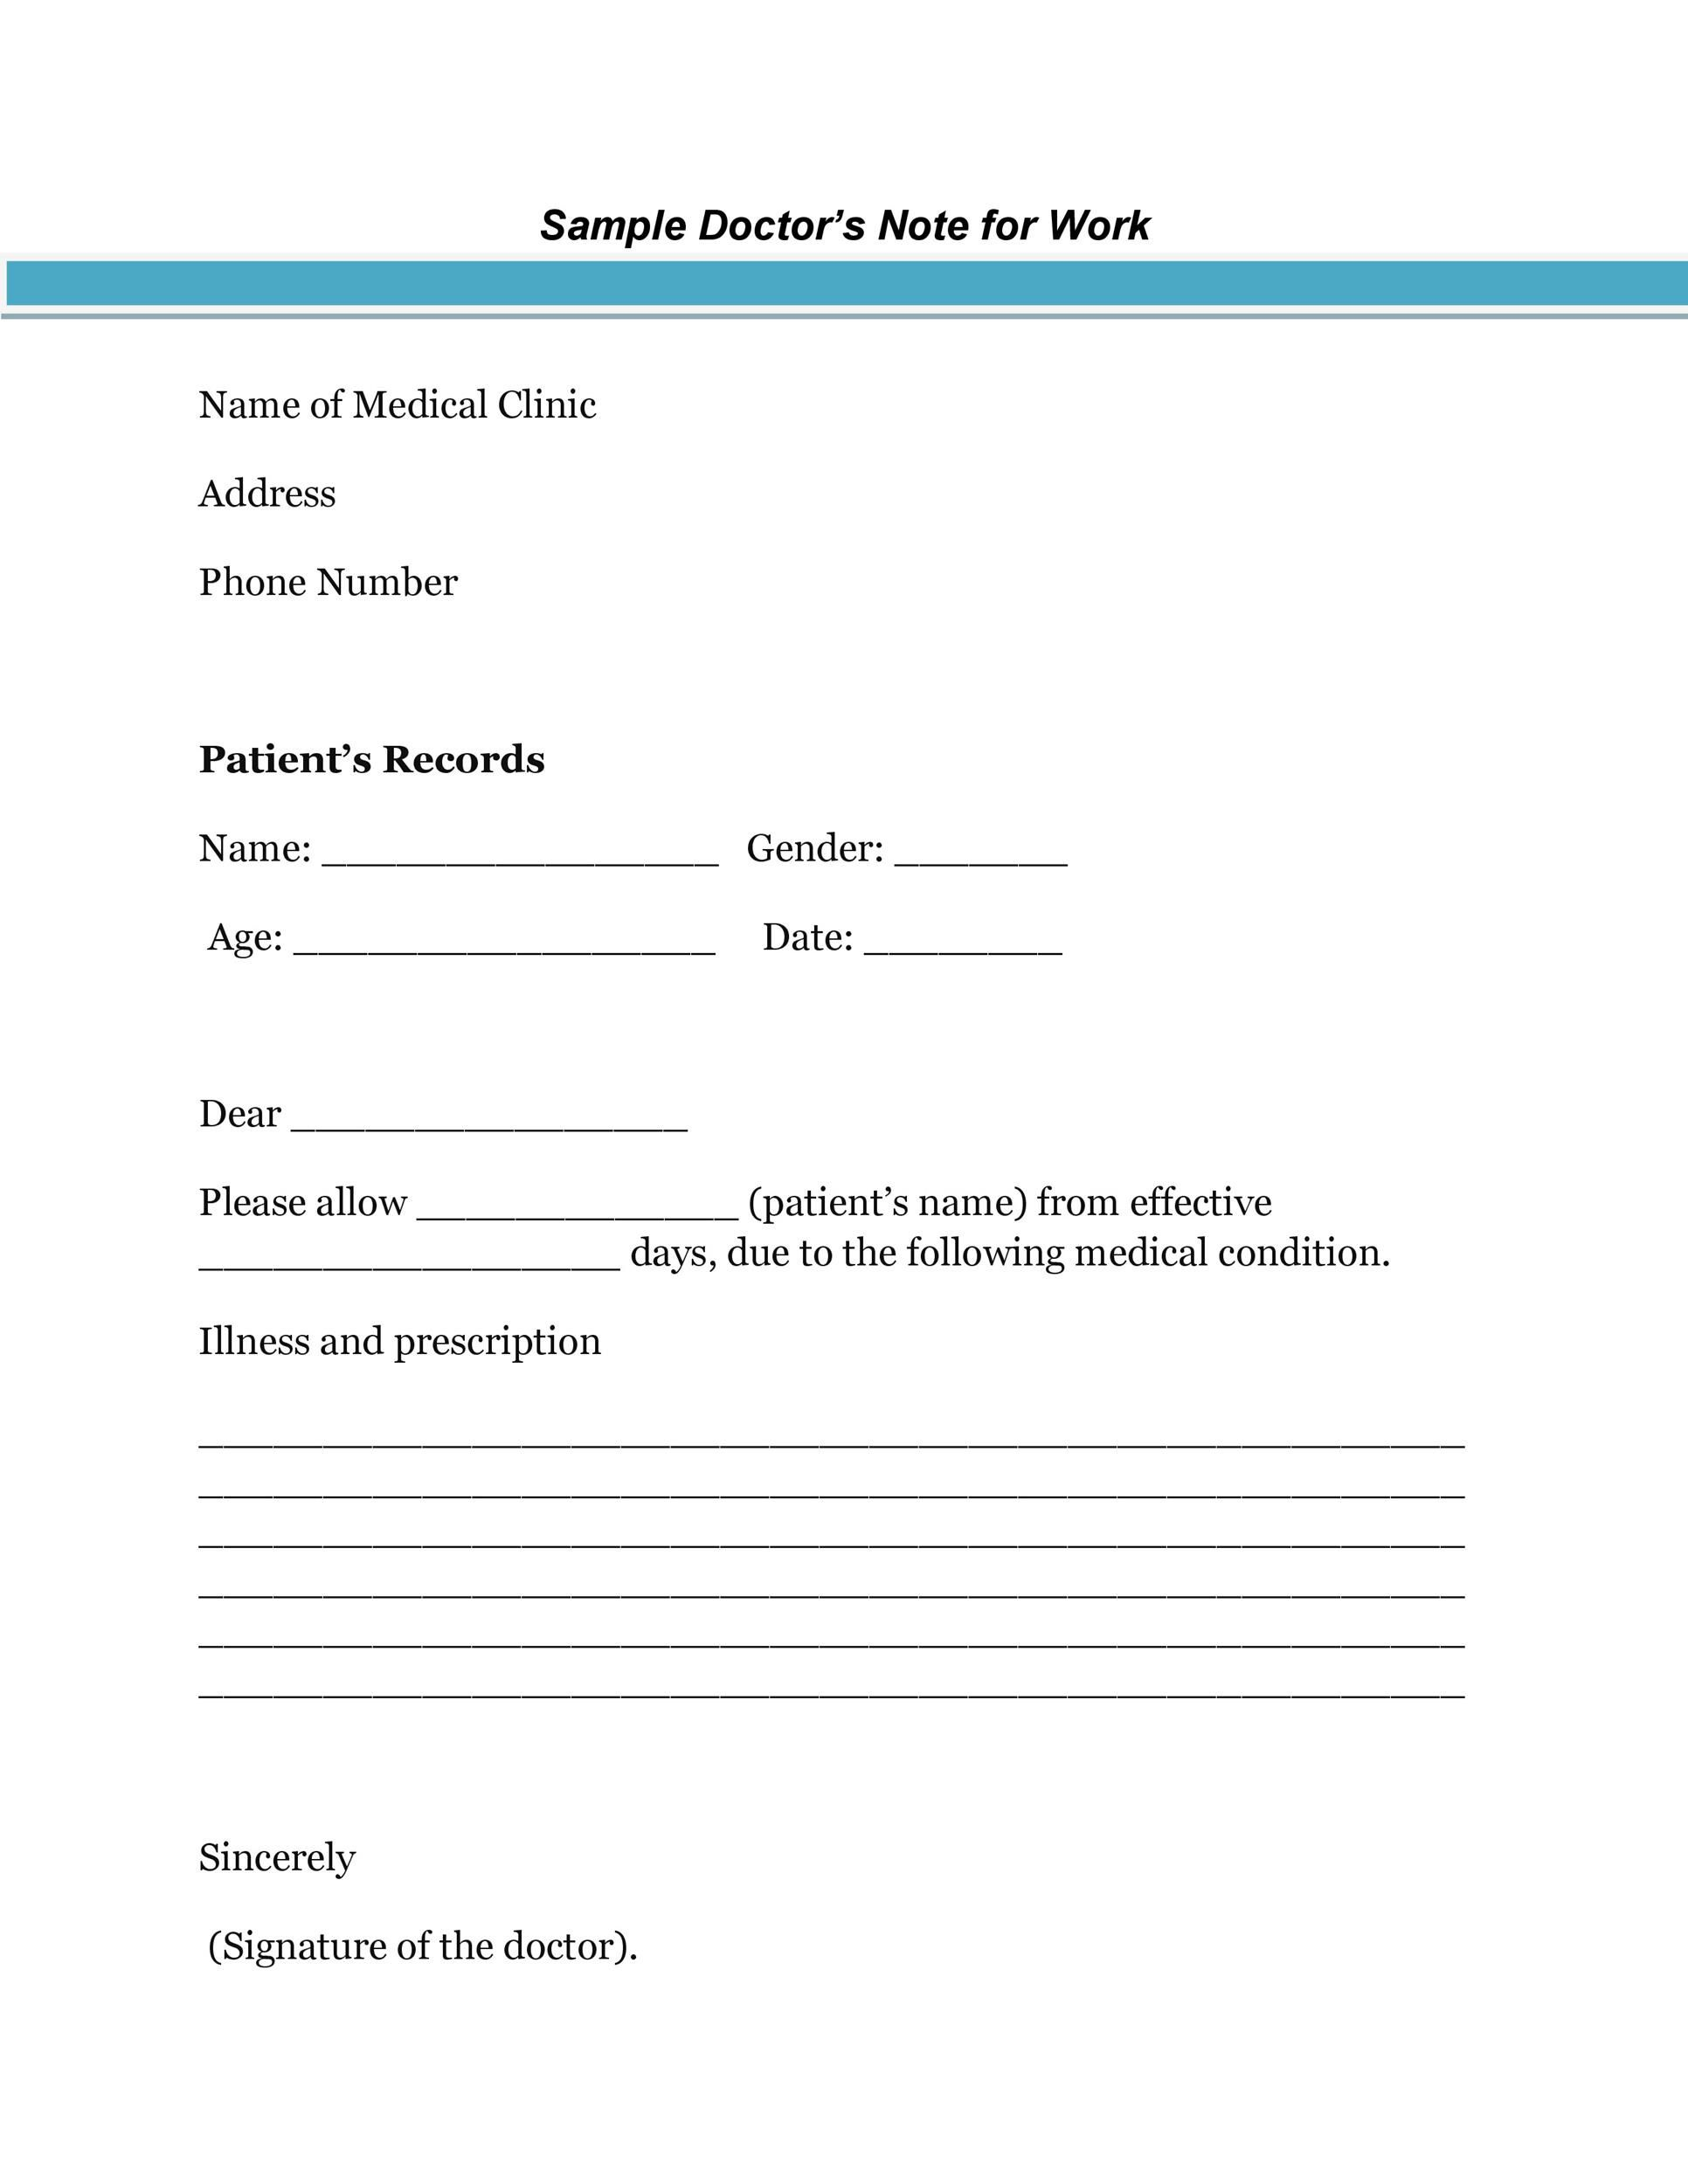 006 Sensational Doctor Note For Work Template Highest Clarity  Doctor' Missing Excuse PdfFull